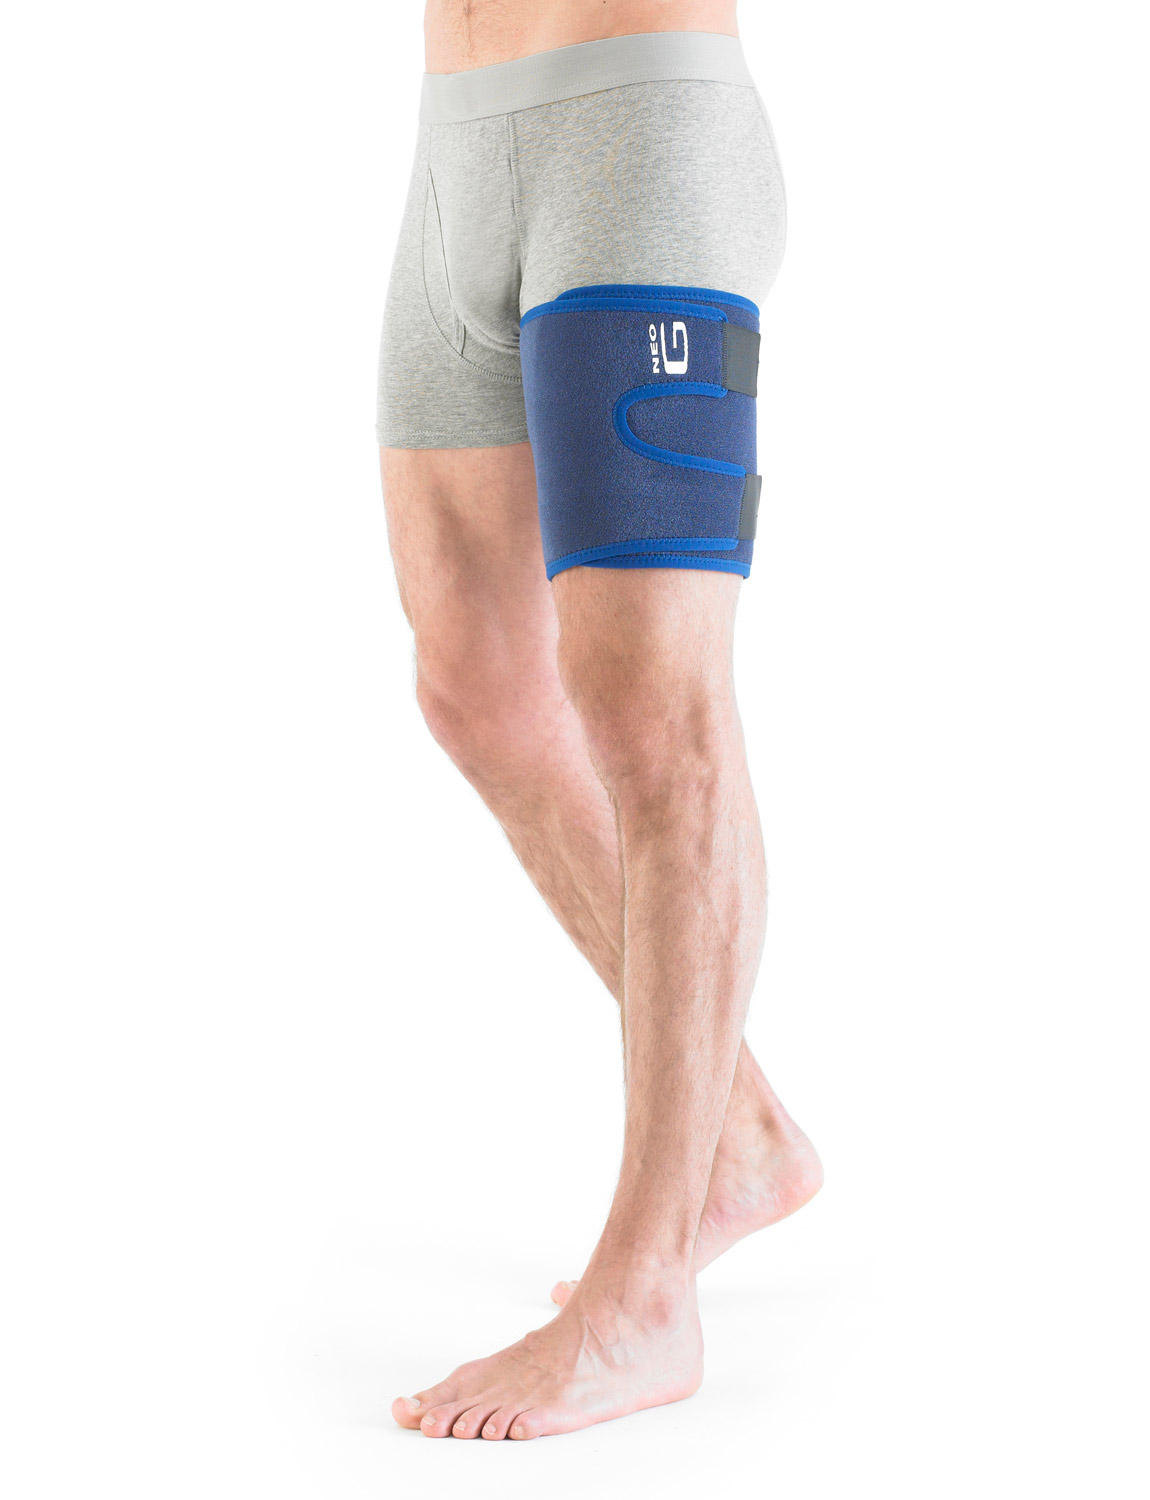 888 - THIGH AND HAMSTRING SUPPORT  The adjustable support is designed to help cushion and protect the thigh muscles to help with pain from strains and sprains caused by occupational or sporting activities and helps minimise the effects of muscle overuse.